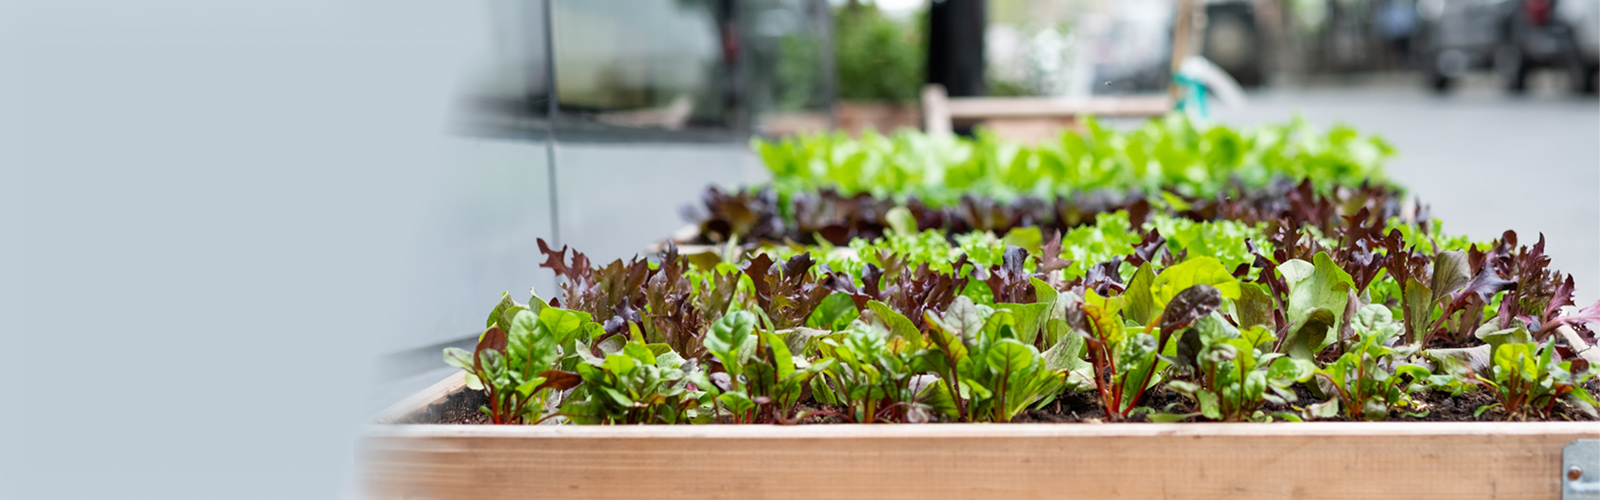 Leafy greens and lettuce grown in raised bed in city